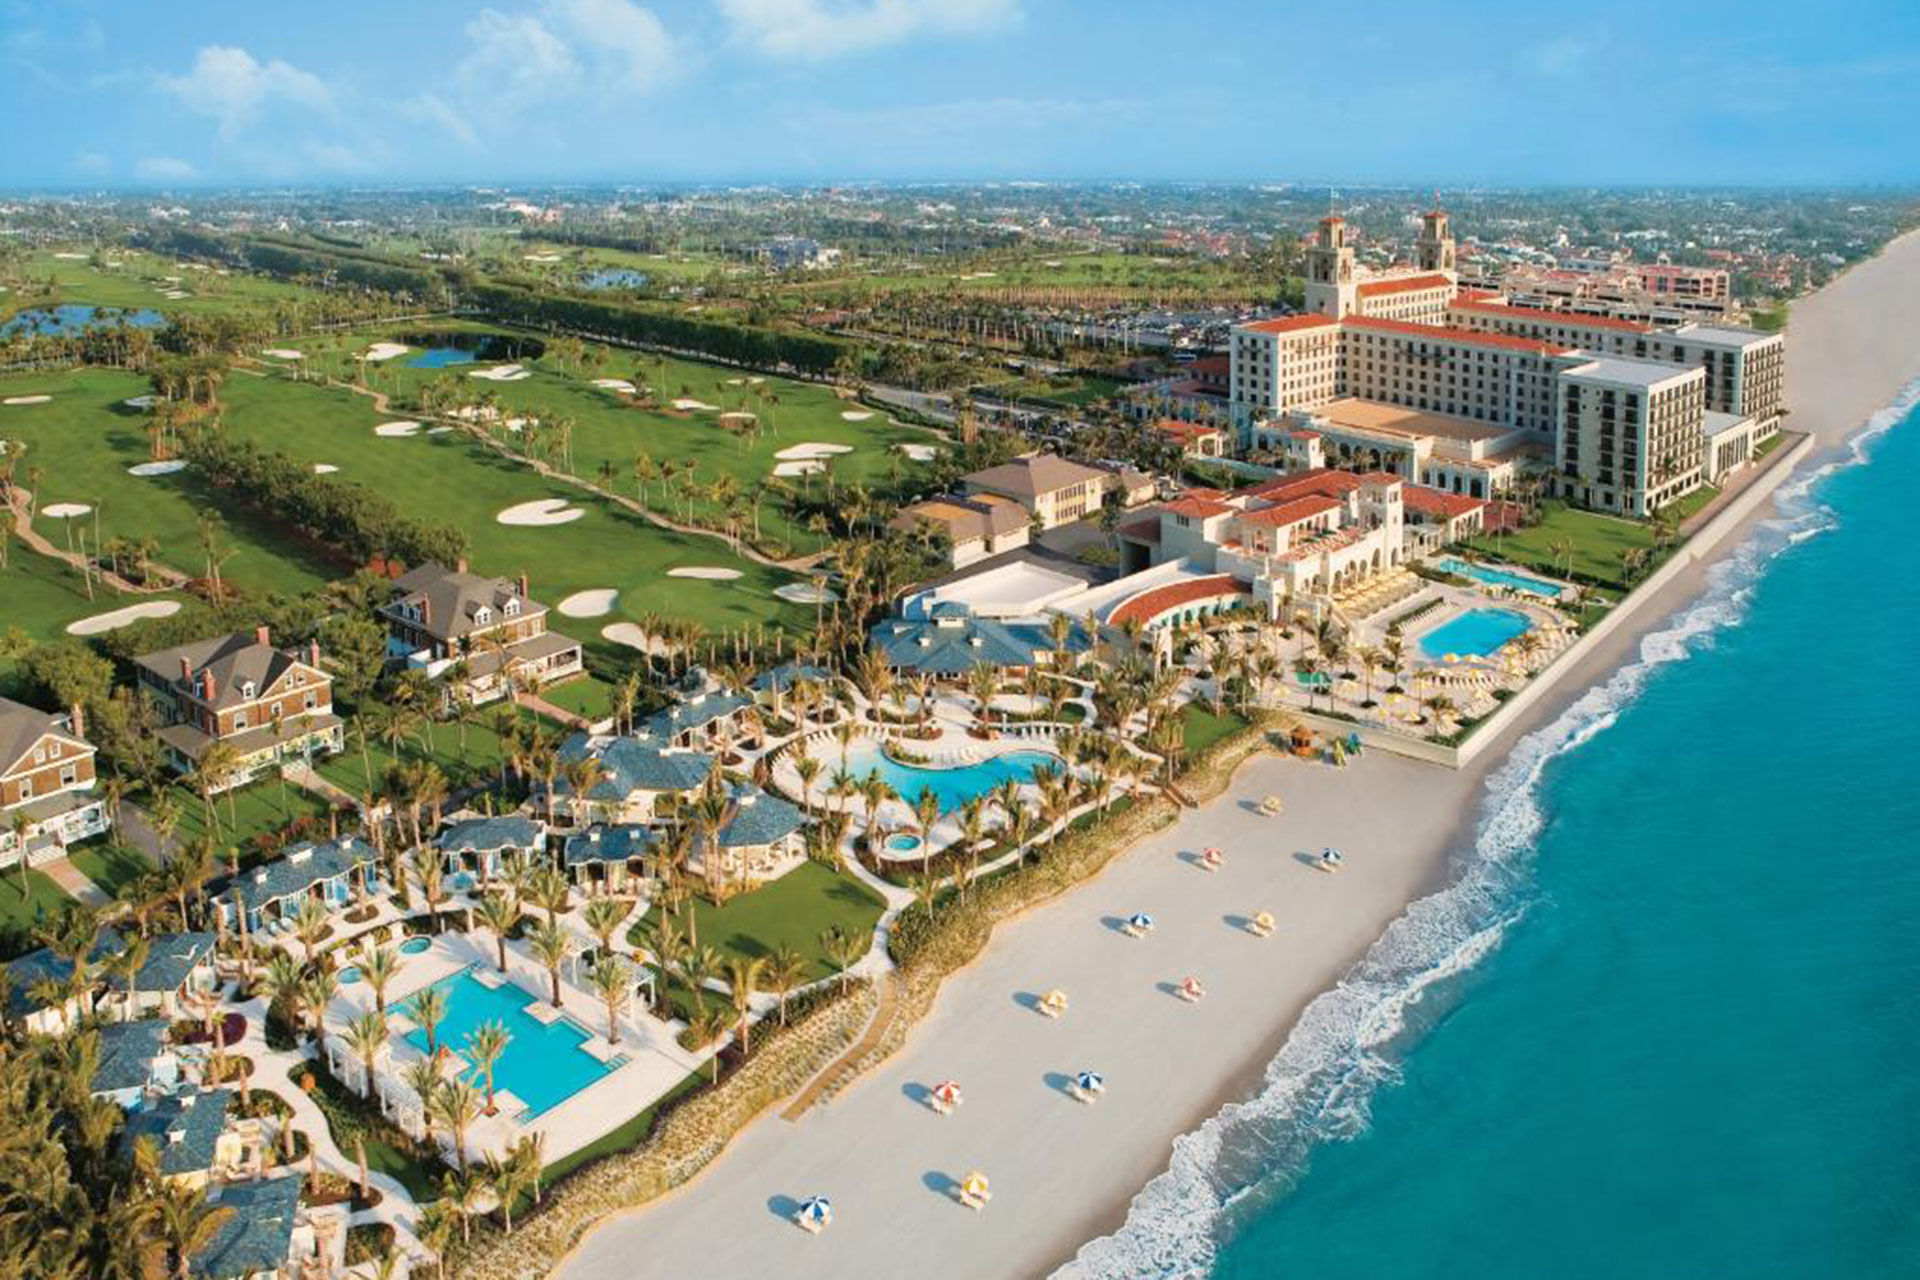 The Breakers Palm Beach in Florida